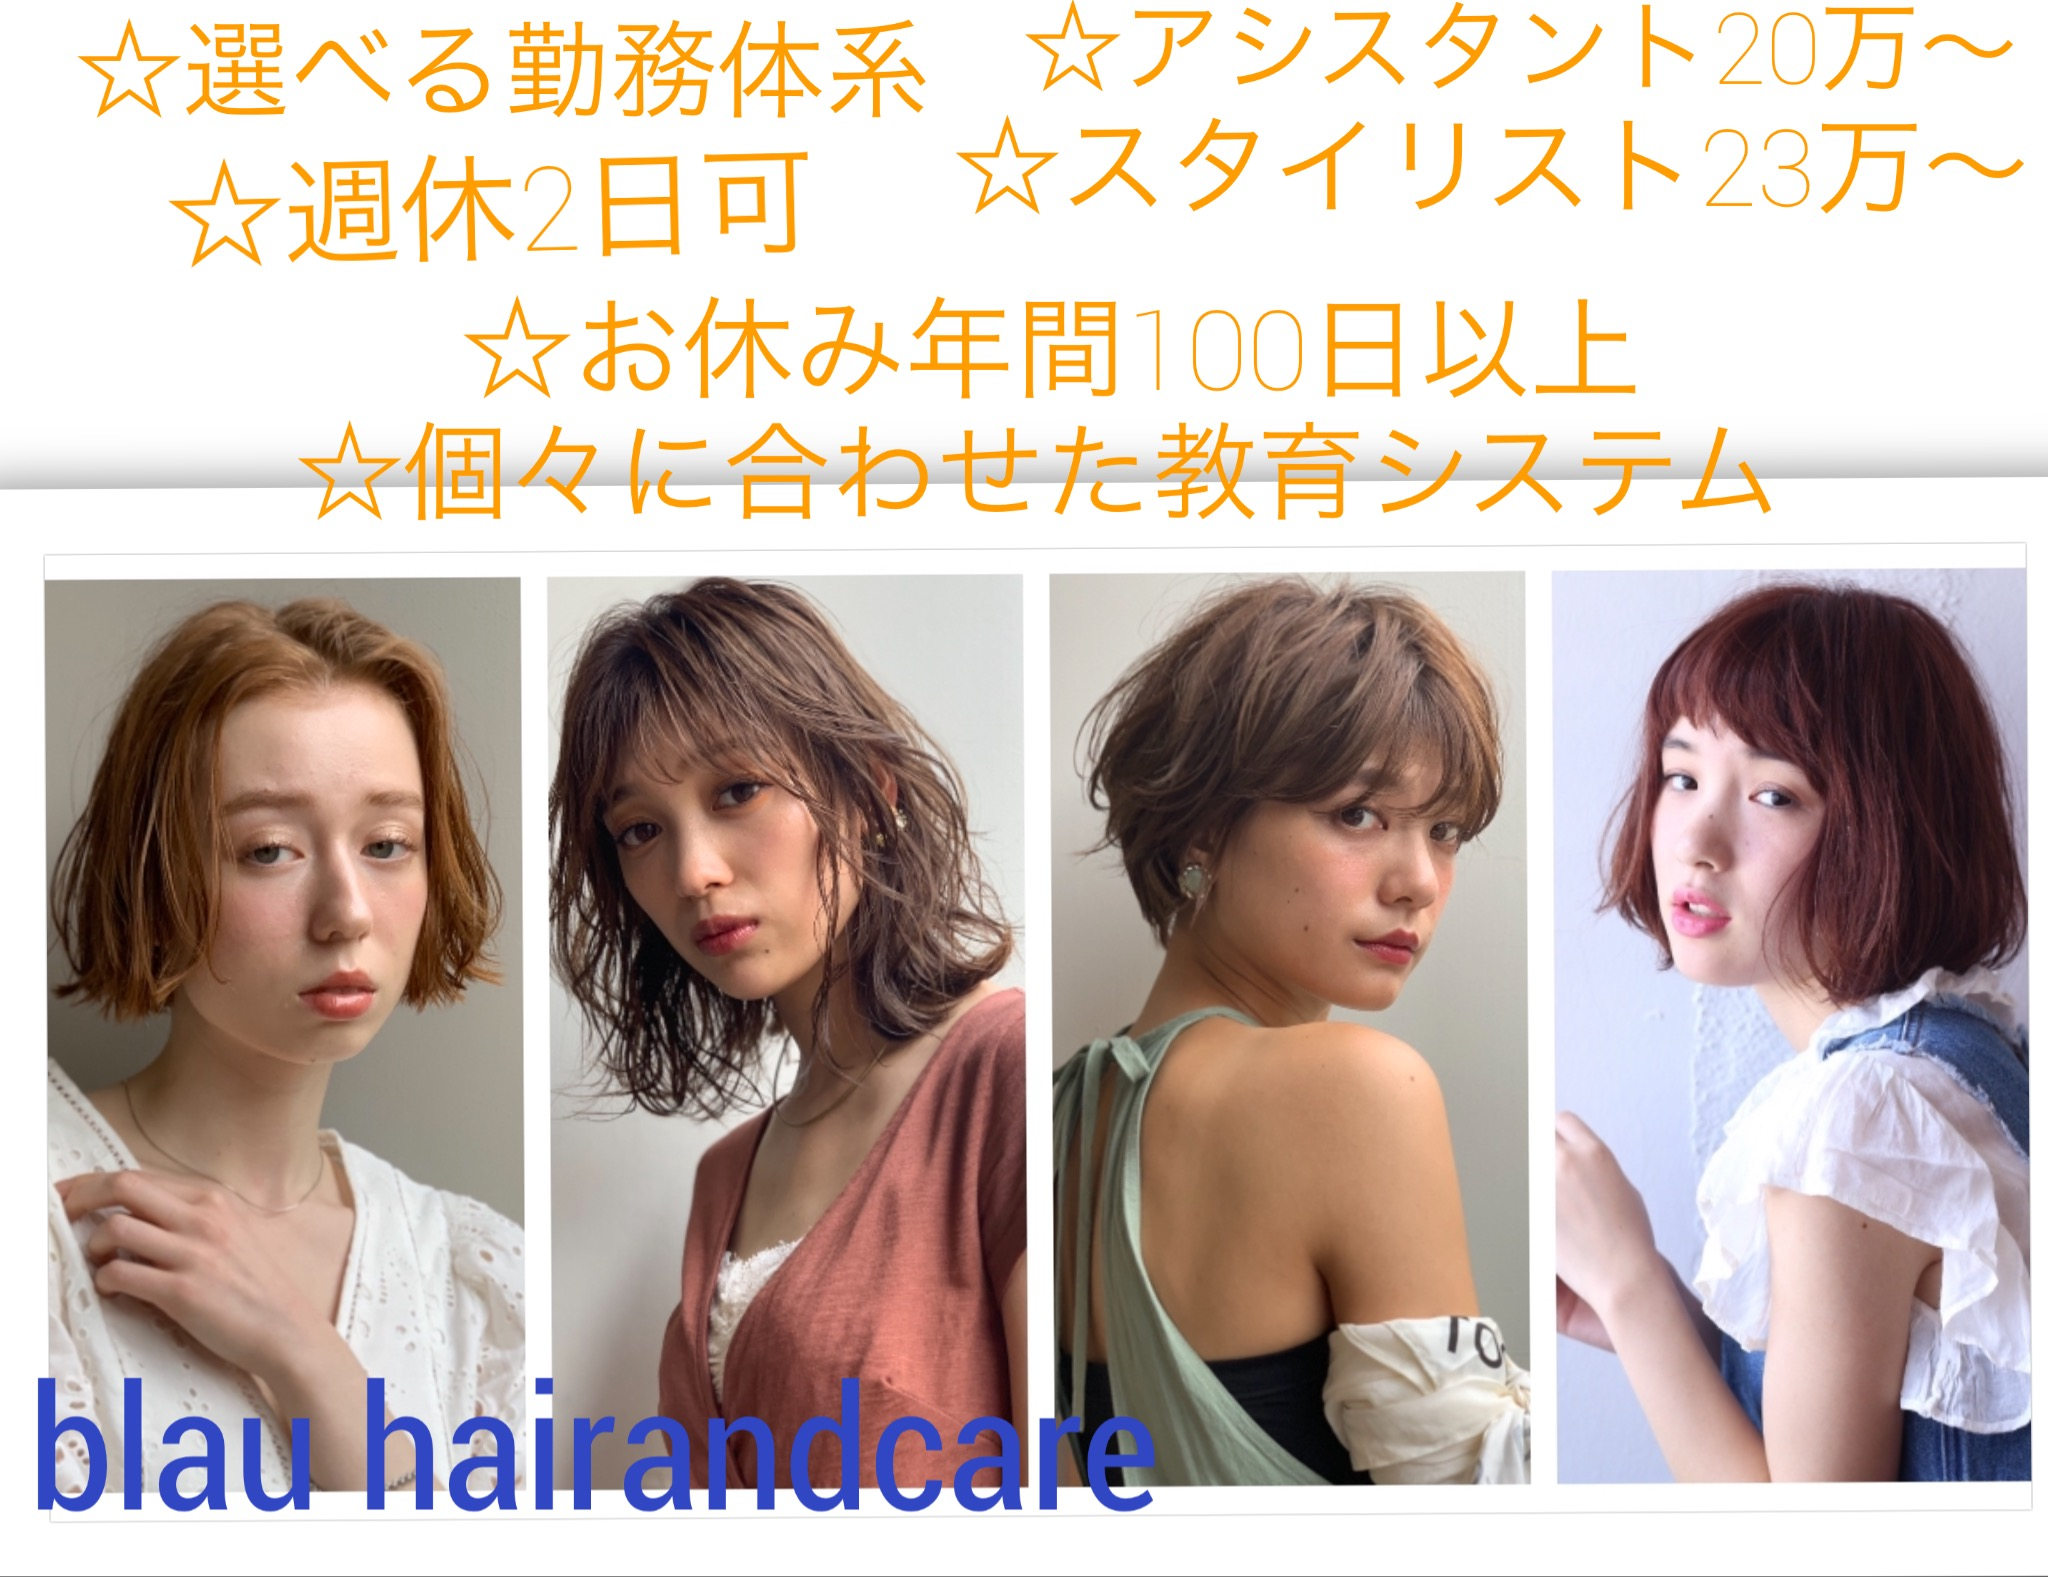 blau hair and care【ブラウ】 求人情報